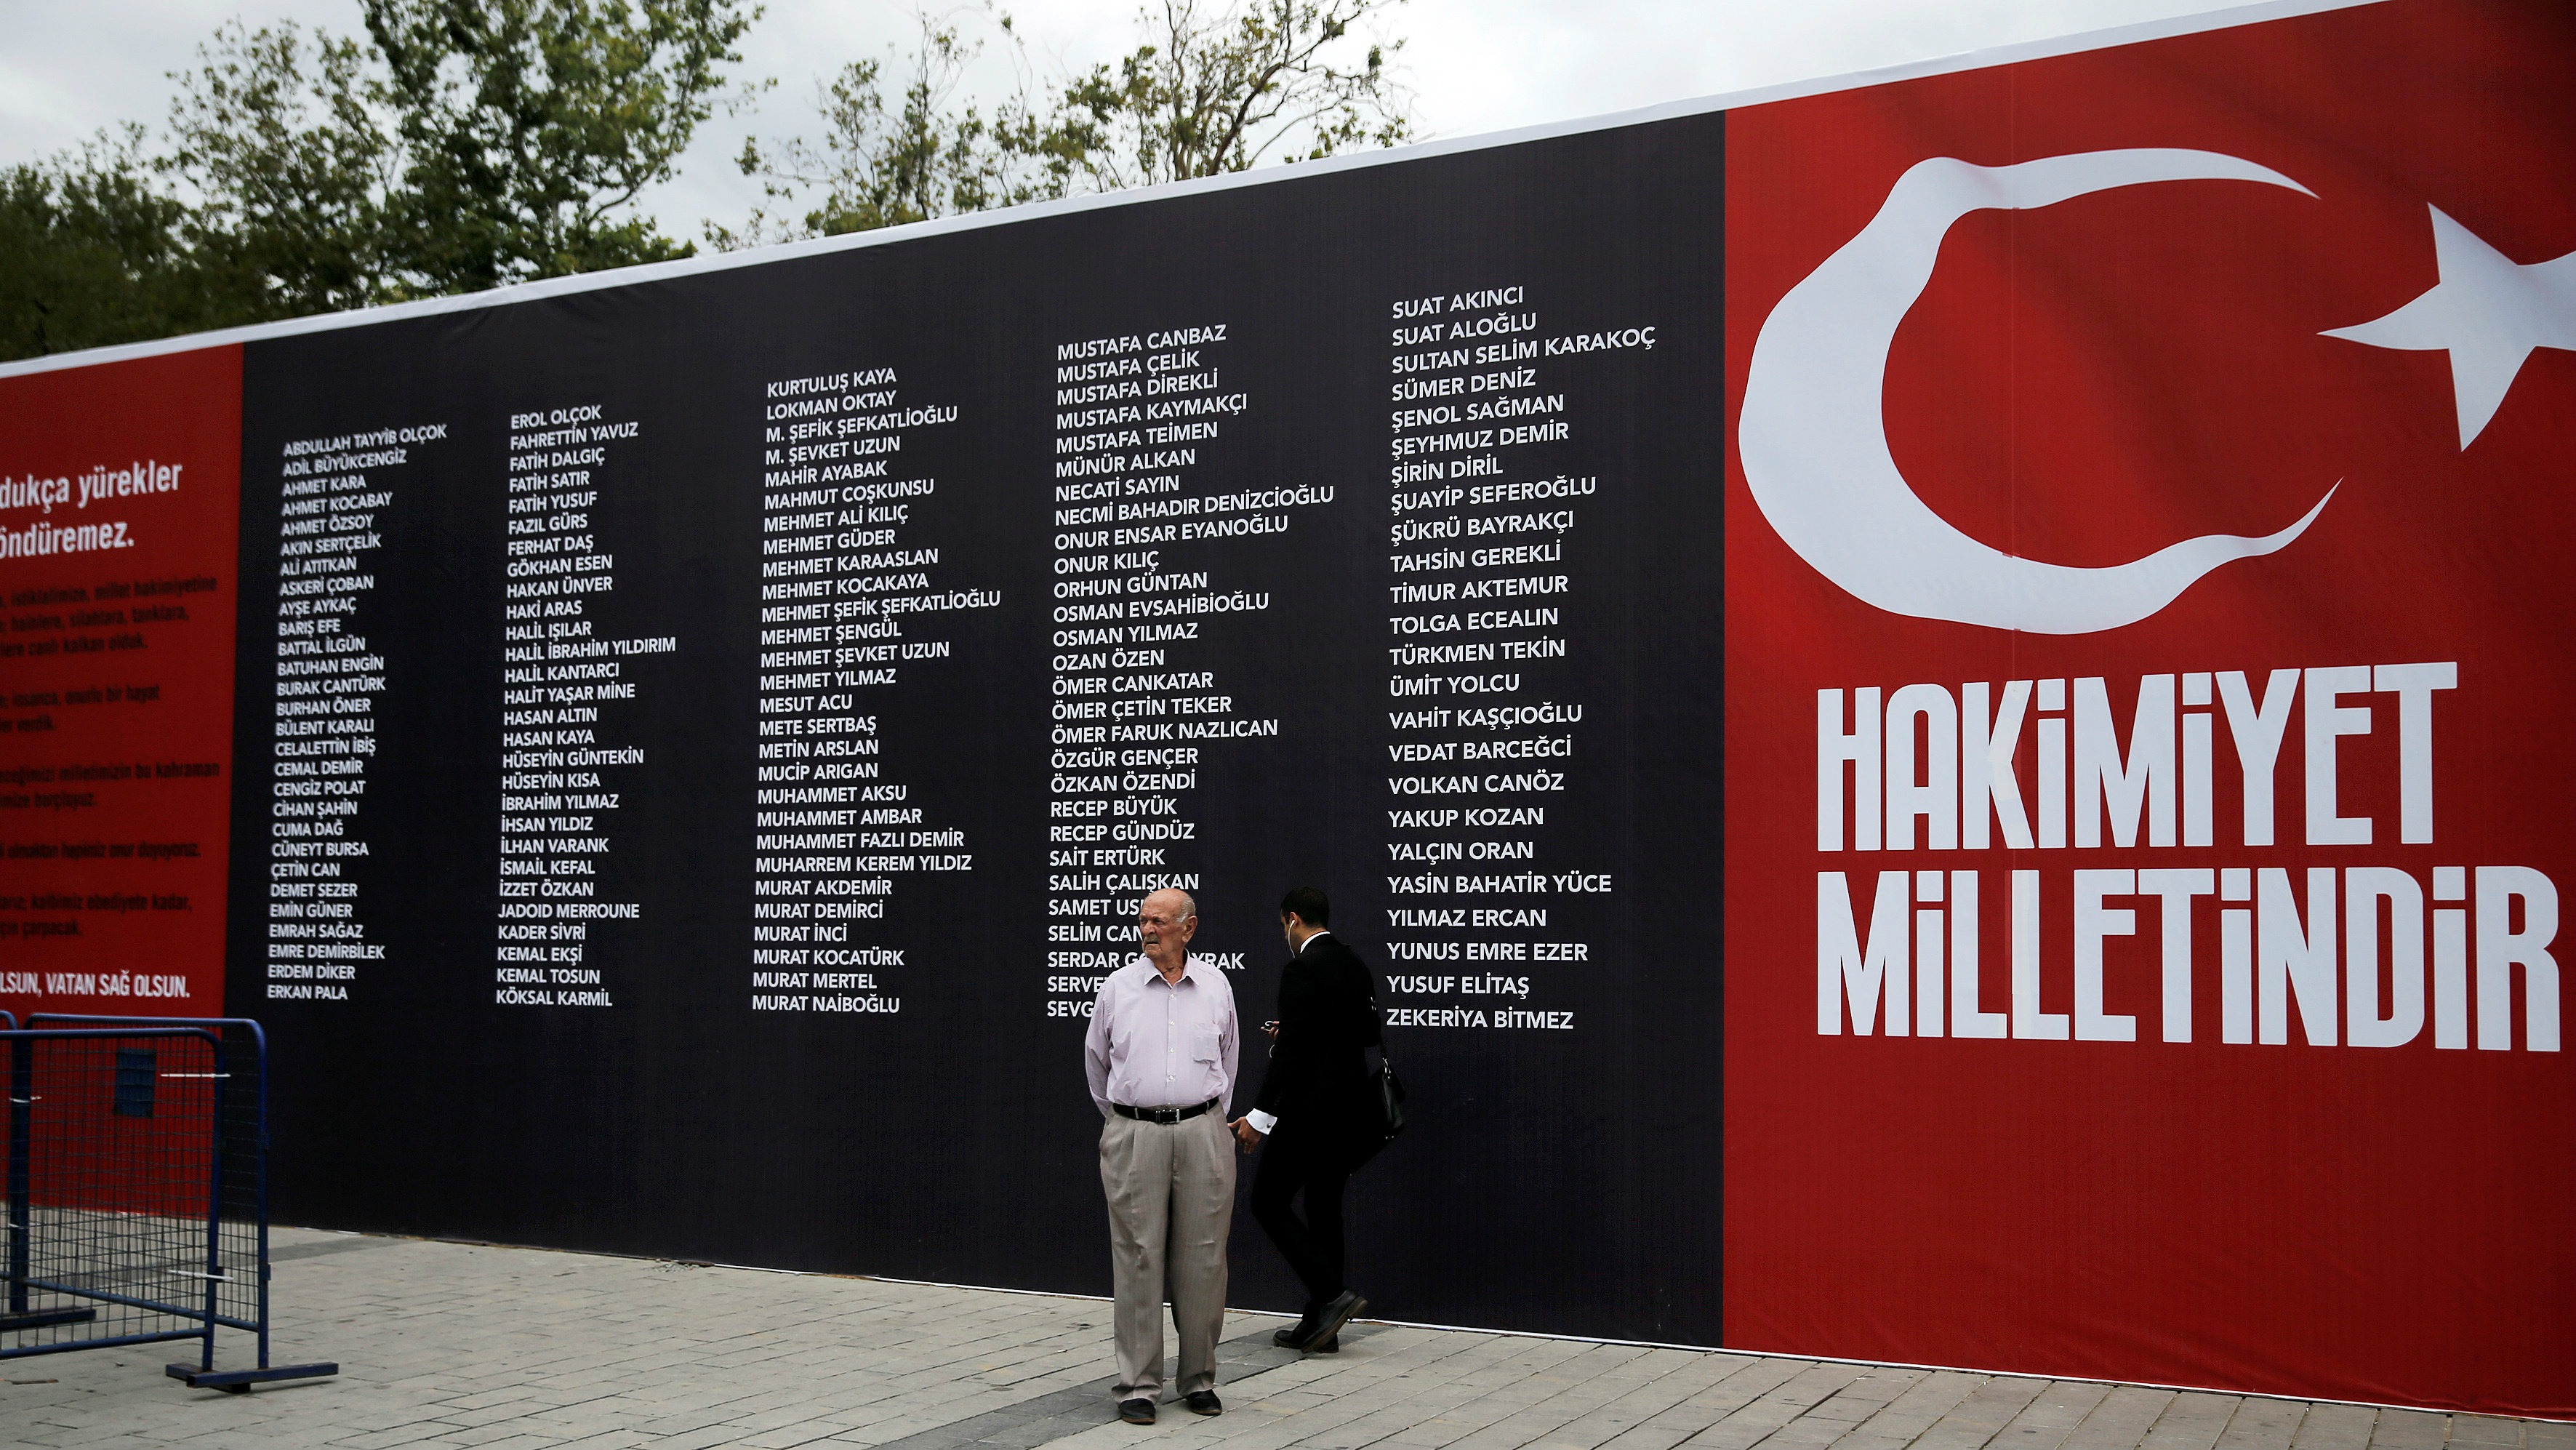 """A man stands in front of a banner reading the names of civilians and policemen who were killed while resisting the coup attempt, on Taksim square in Istanbul, Turkey, July 20, 2016. The slogan reads """"Sovereignty belongs to the nation"""